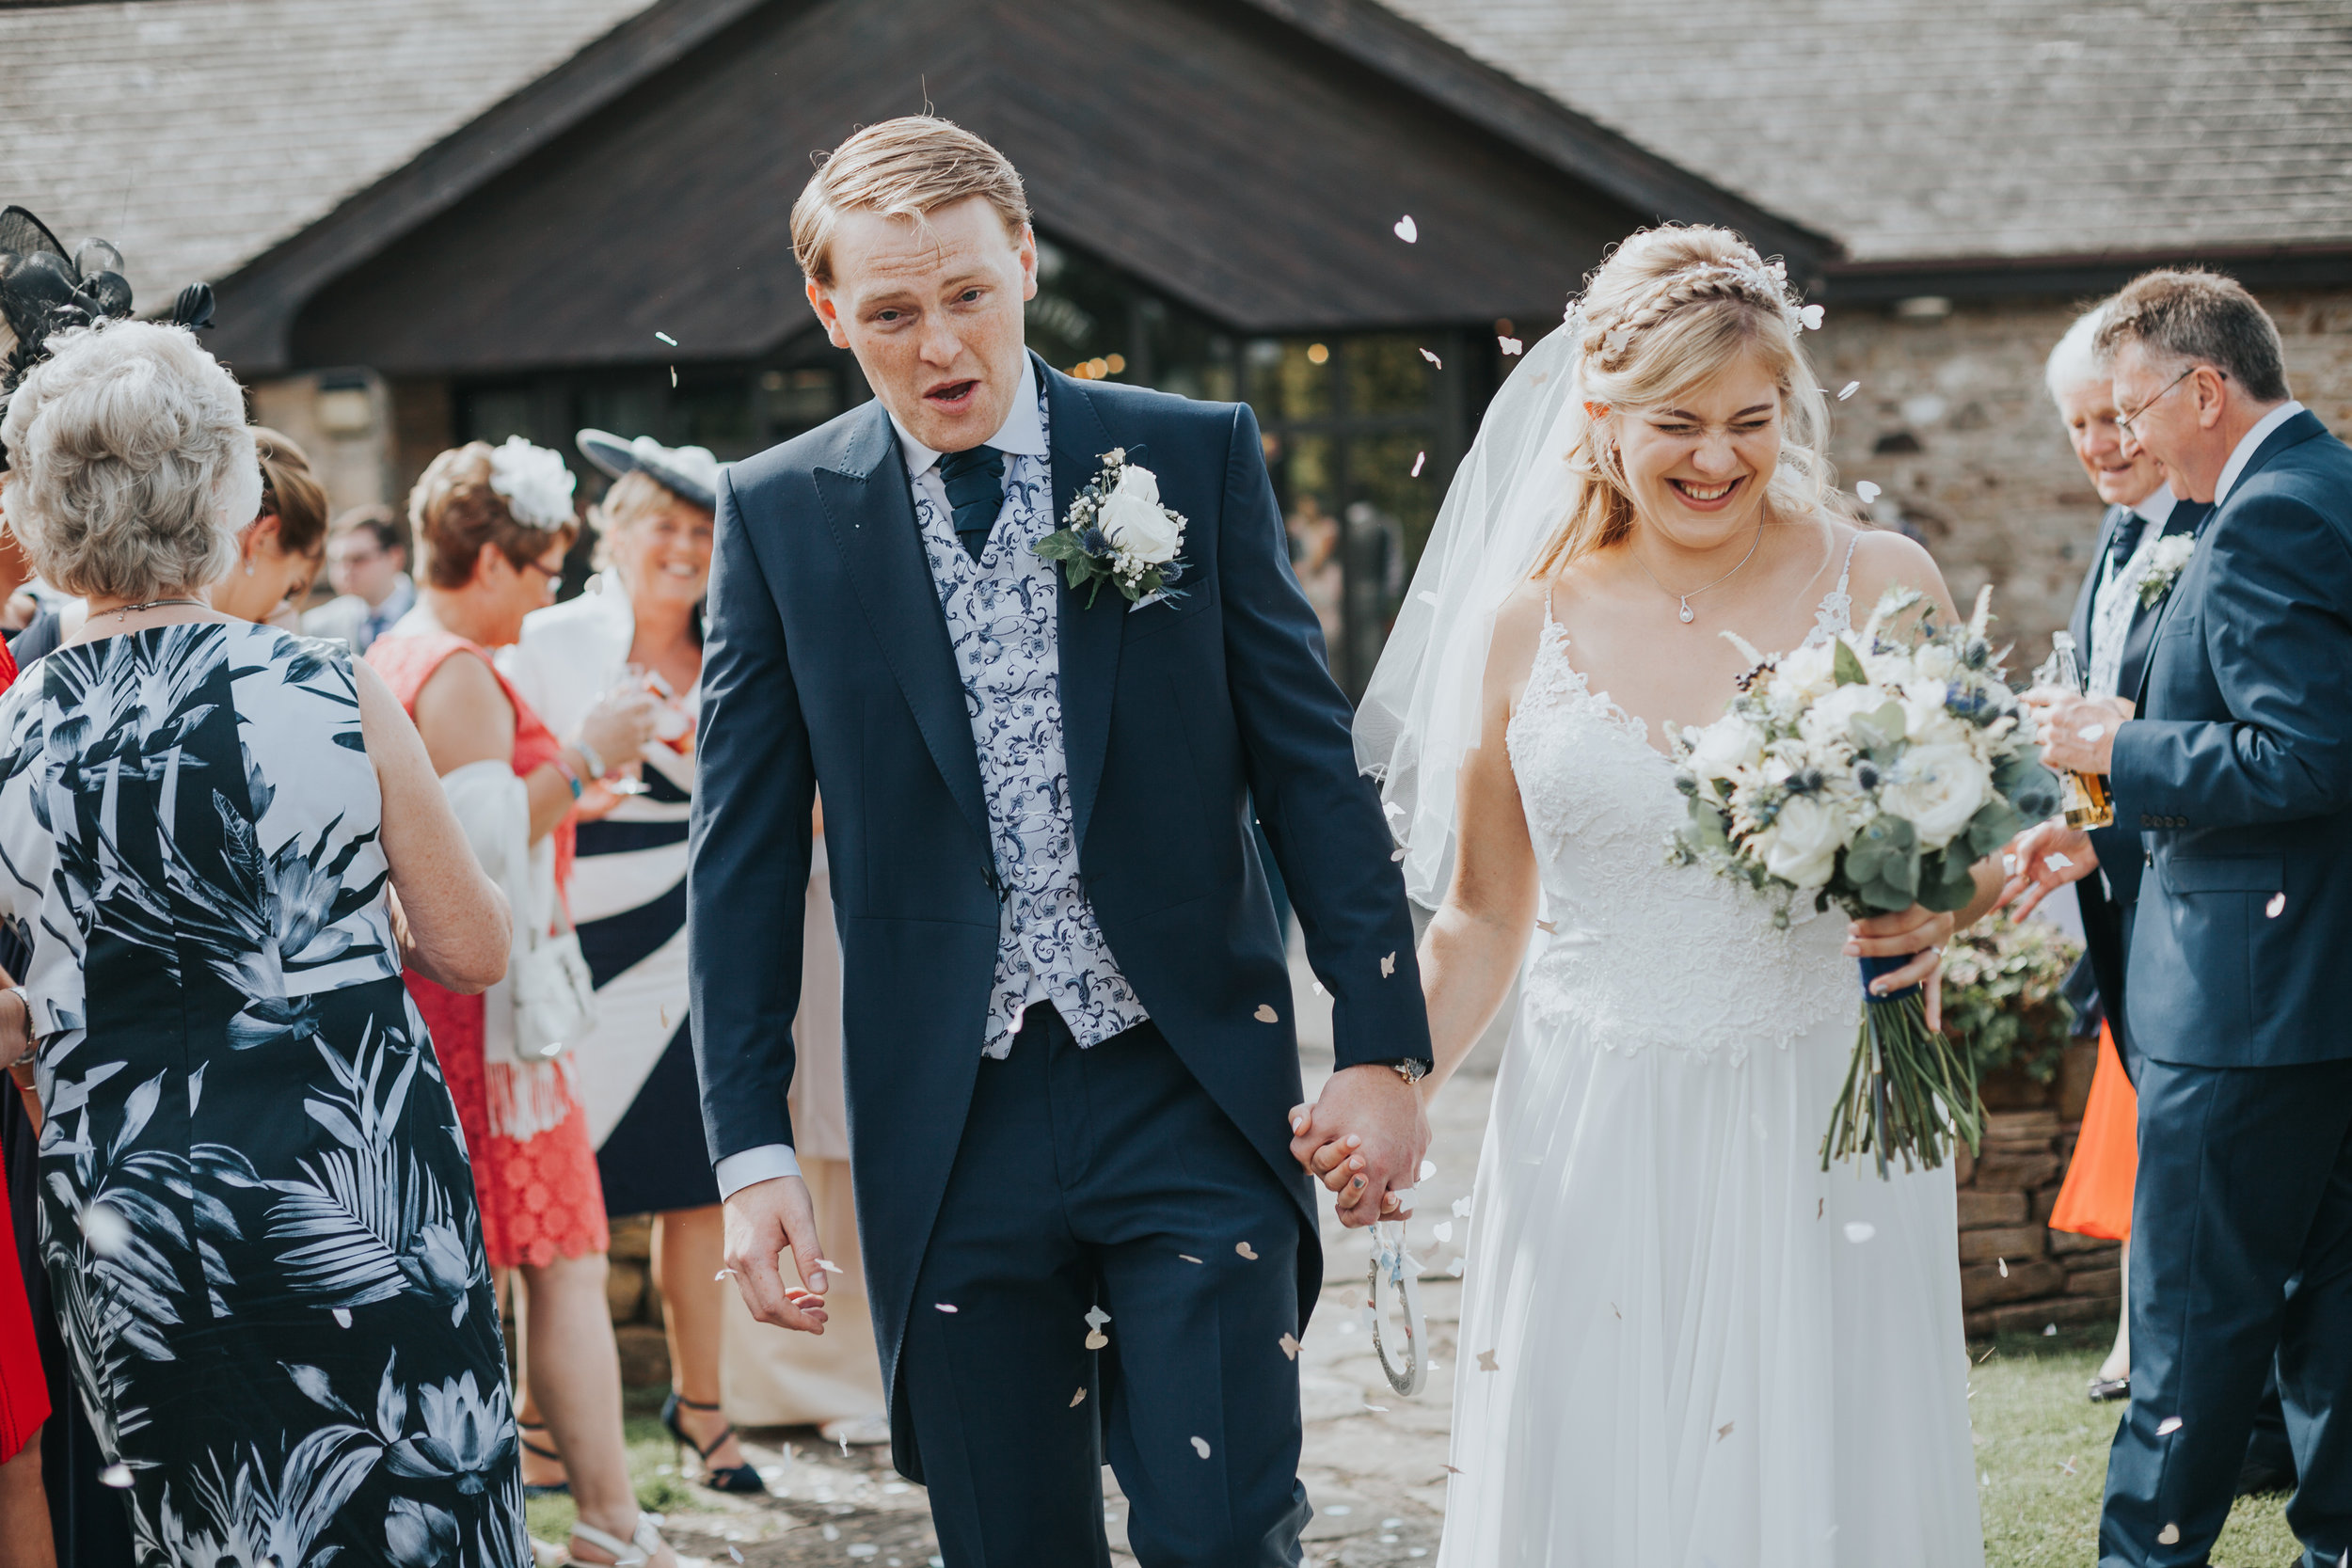 Bride and groom have confetti thrown at them outside the ceremony room at Mytton Fold.